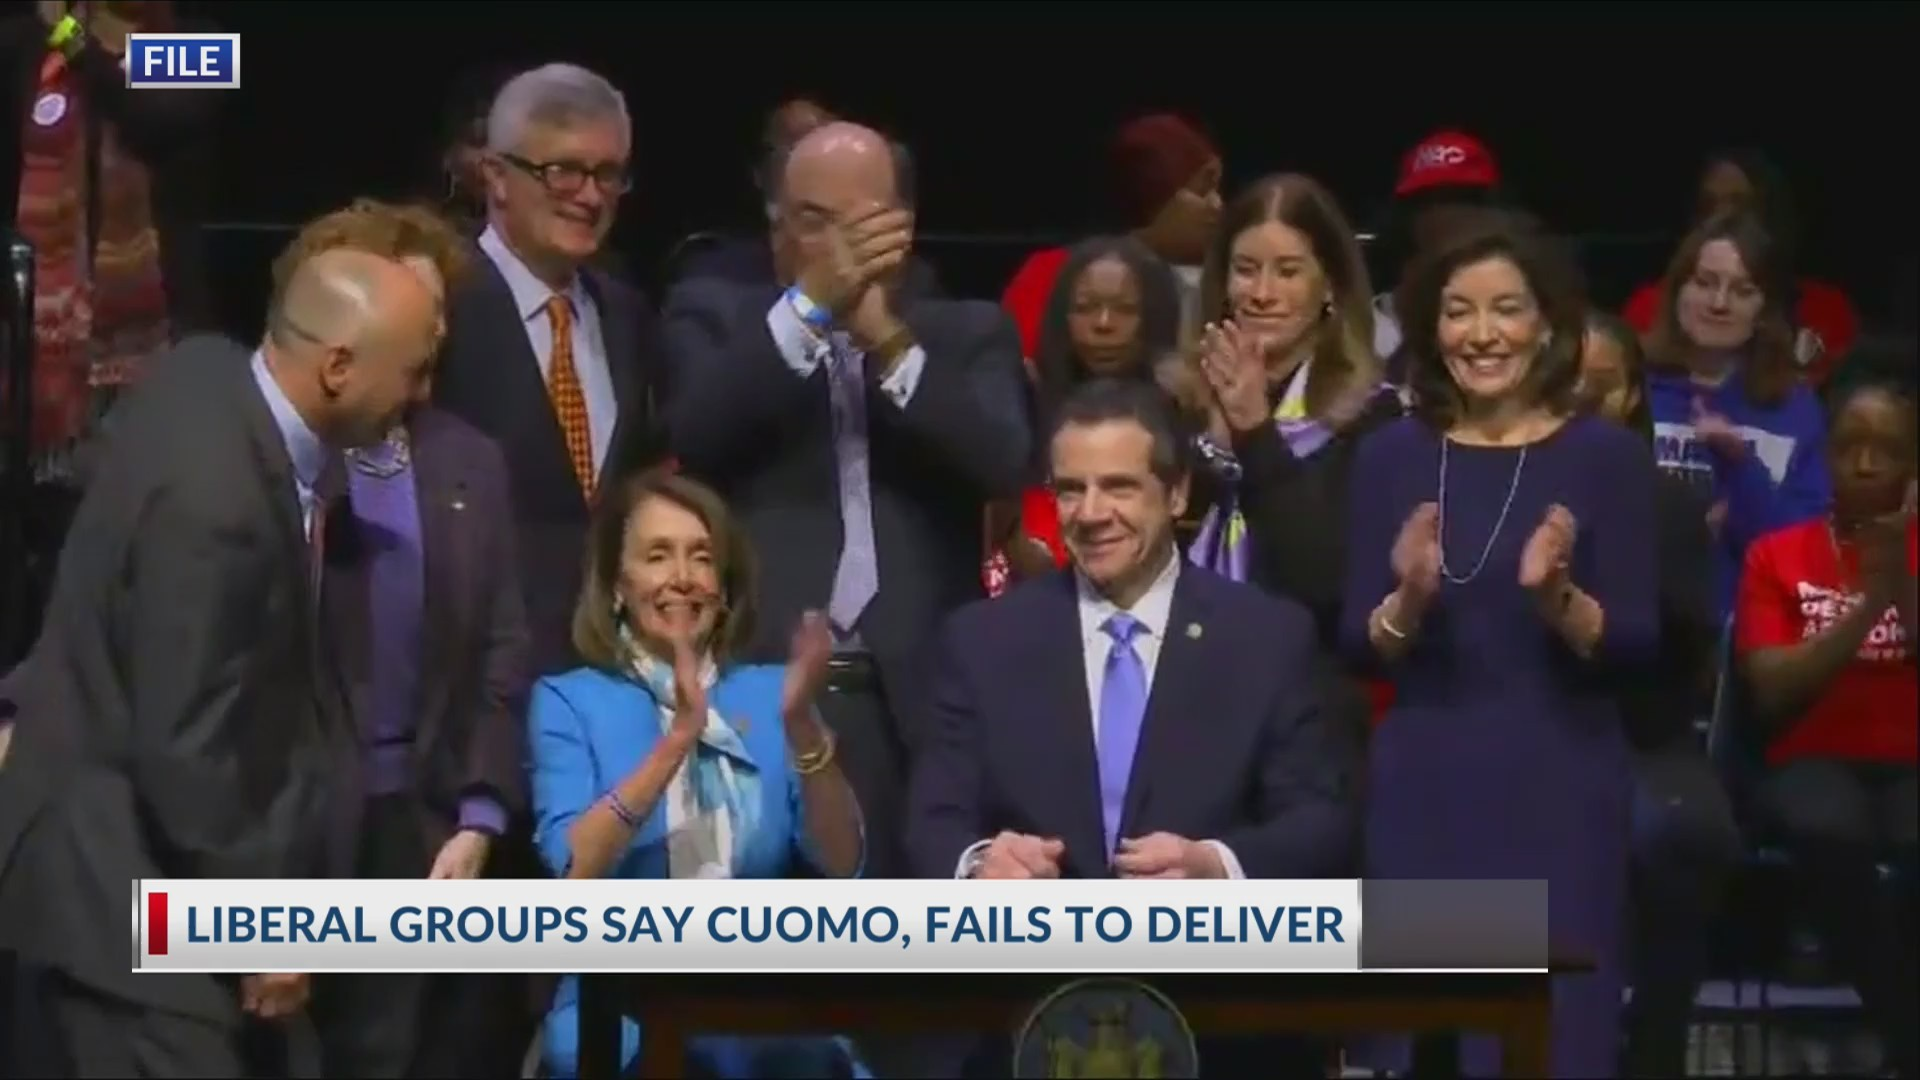 Liberal group says Cuomo fails to deliver